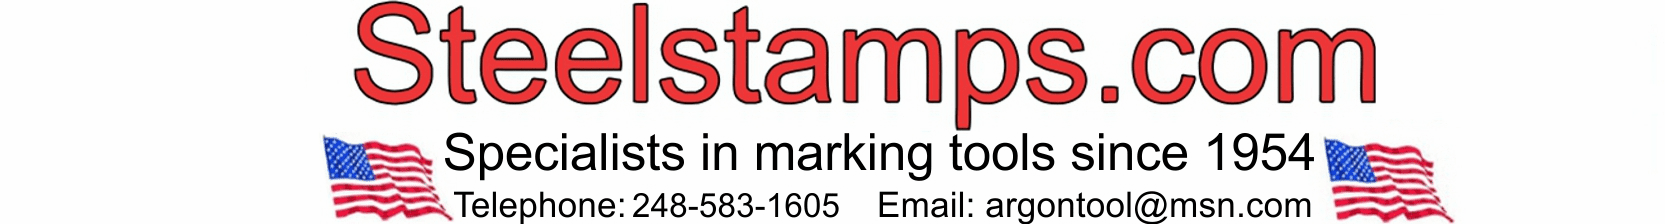 steelstamps.com